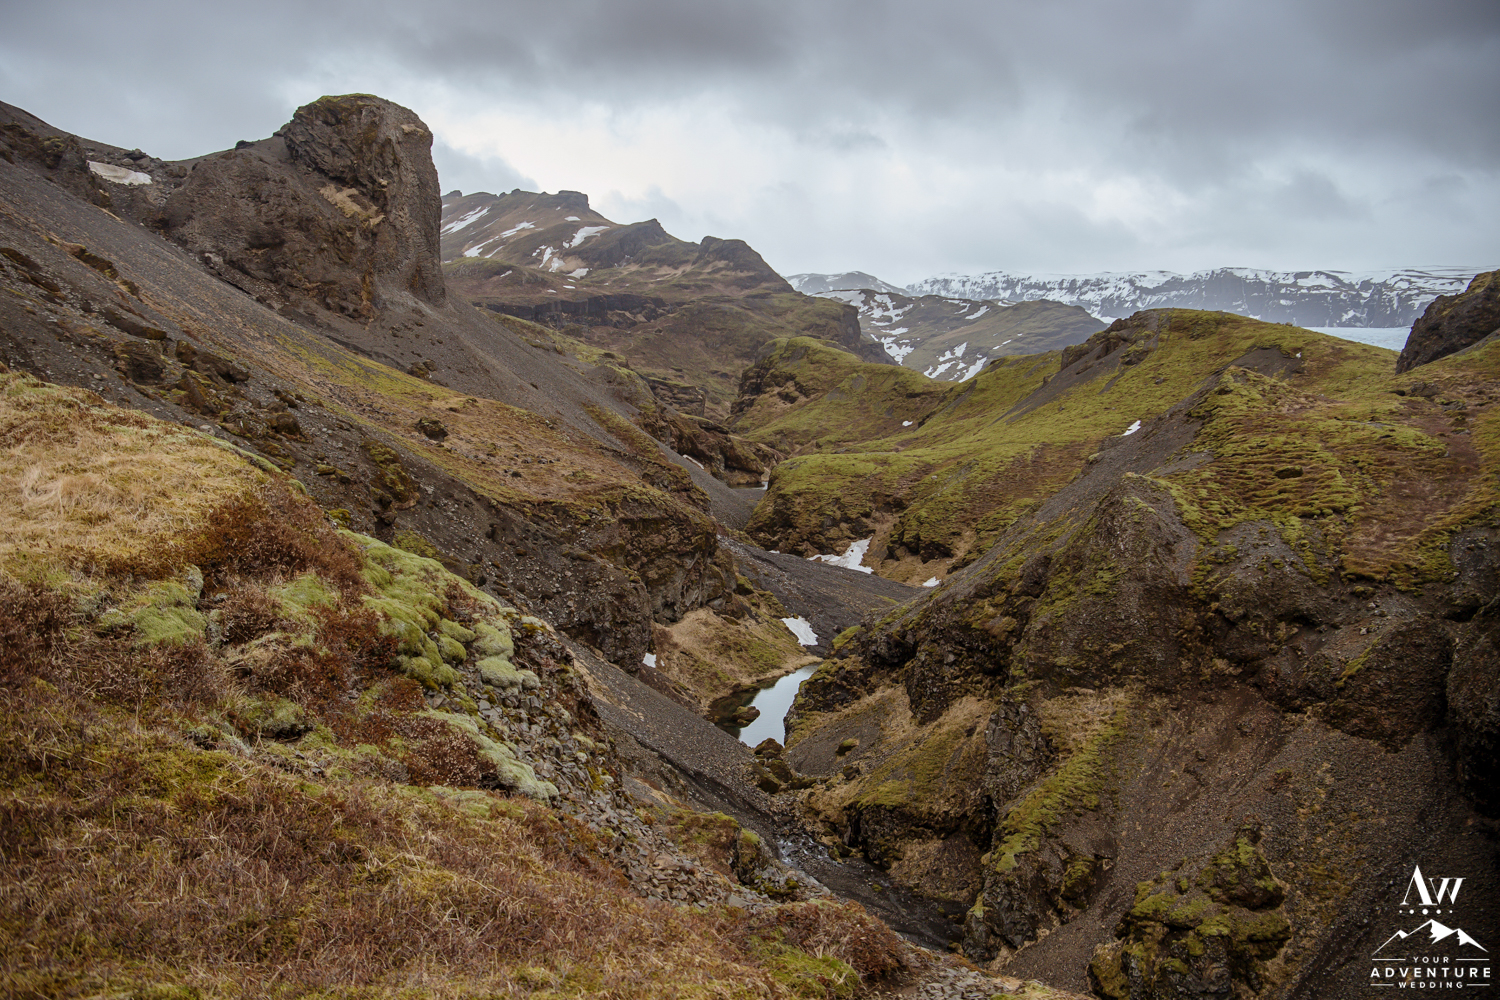 Landscape view of Iceland Elopement Location